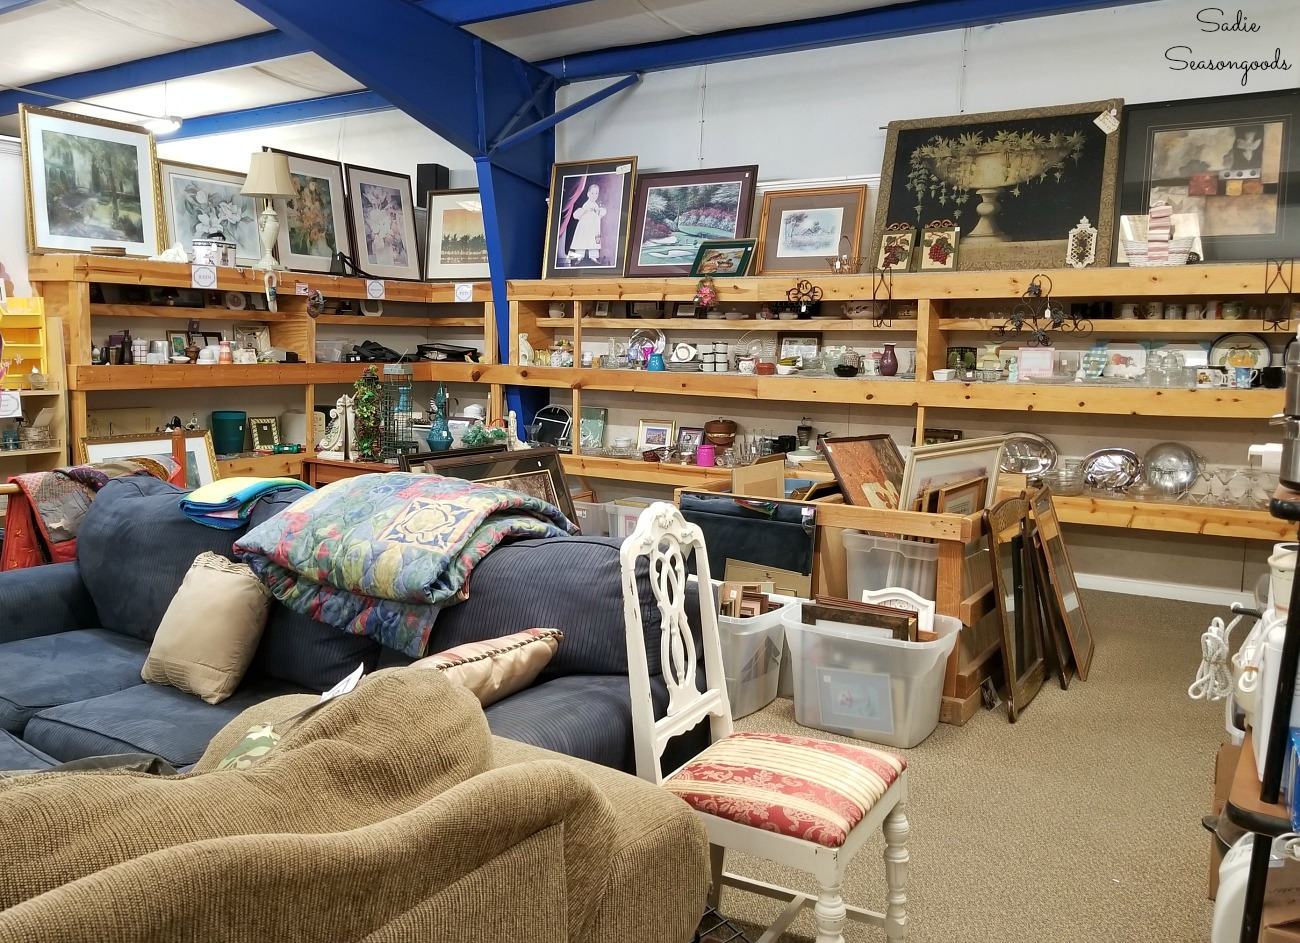 Thrift stores Hendersonville NC at Council on Aging Thrift Shop by Sadie Seasongoods